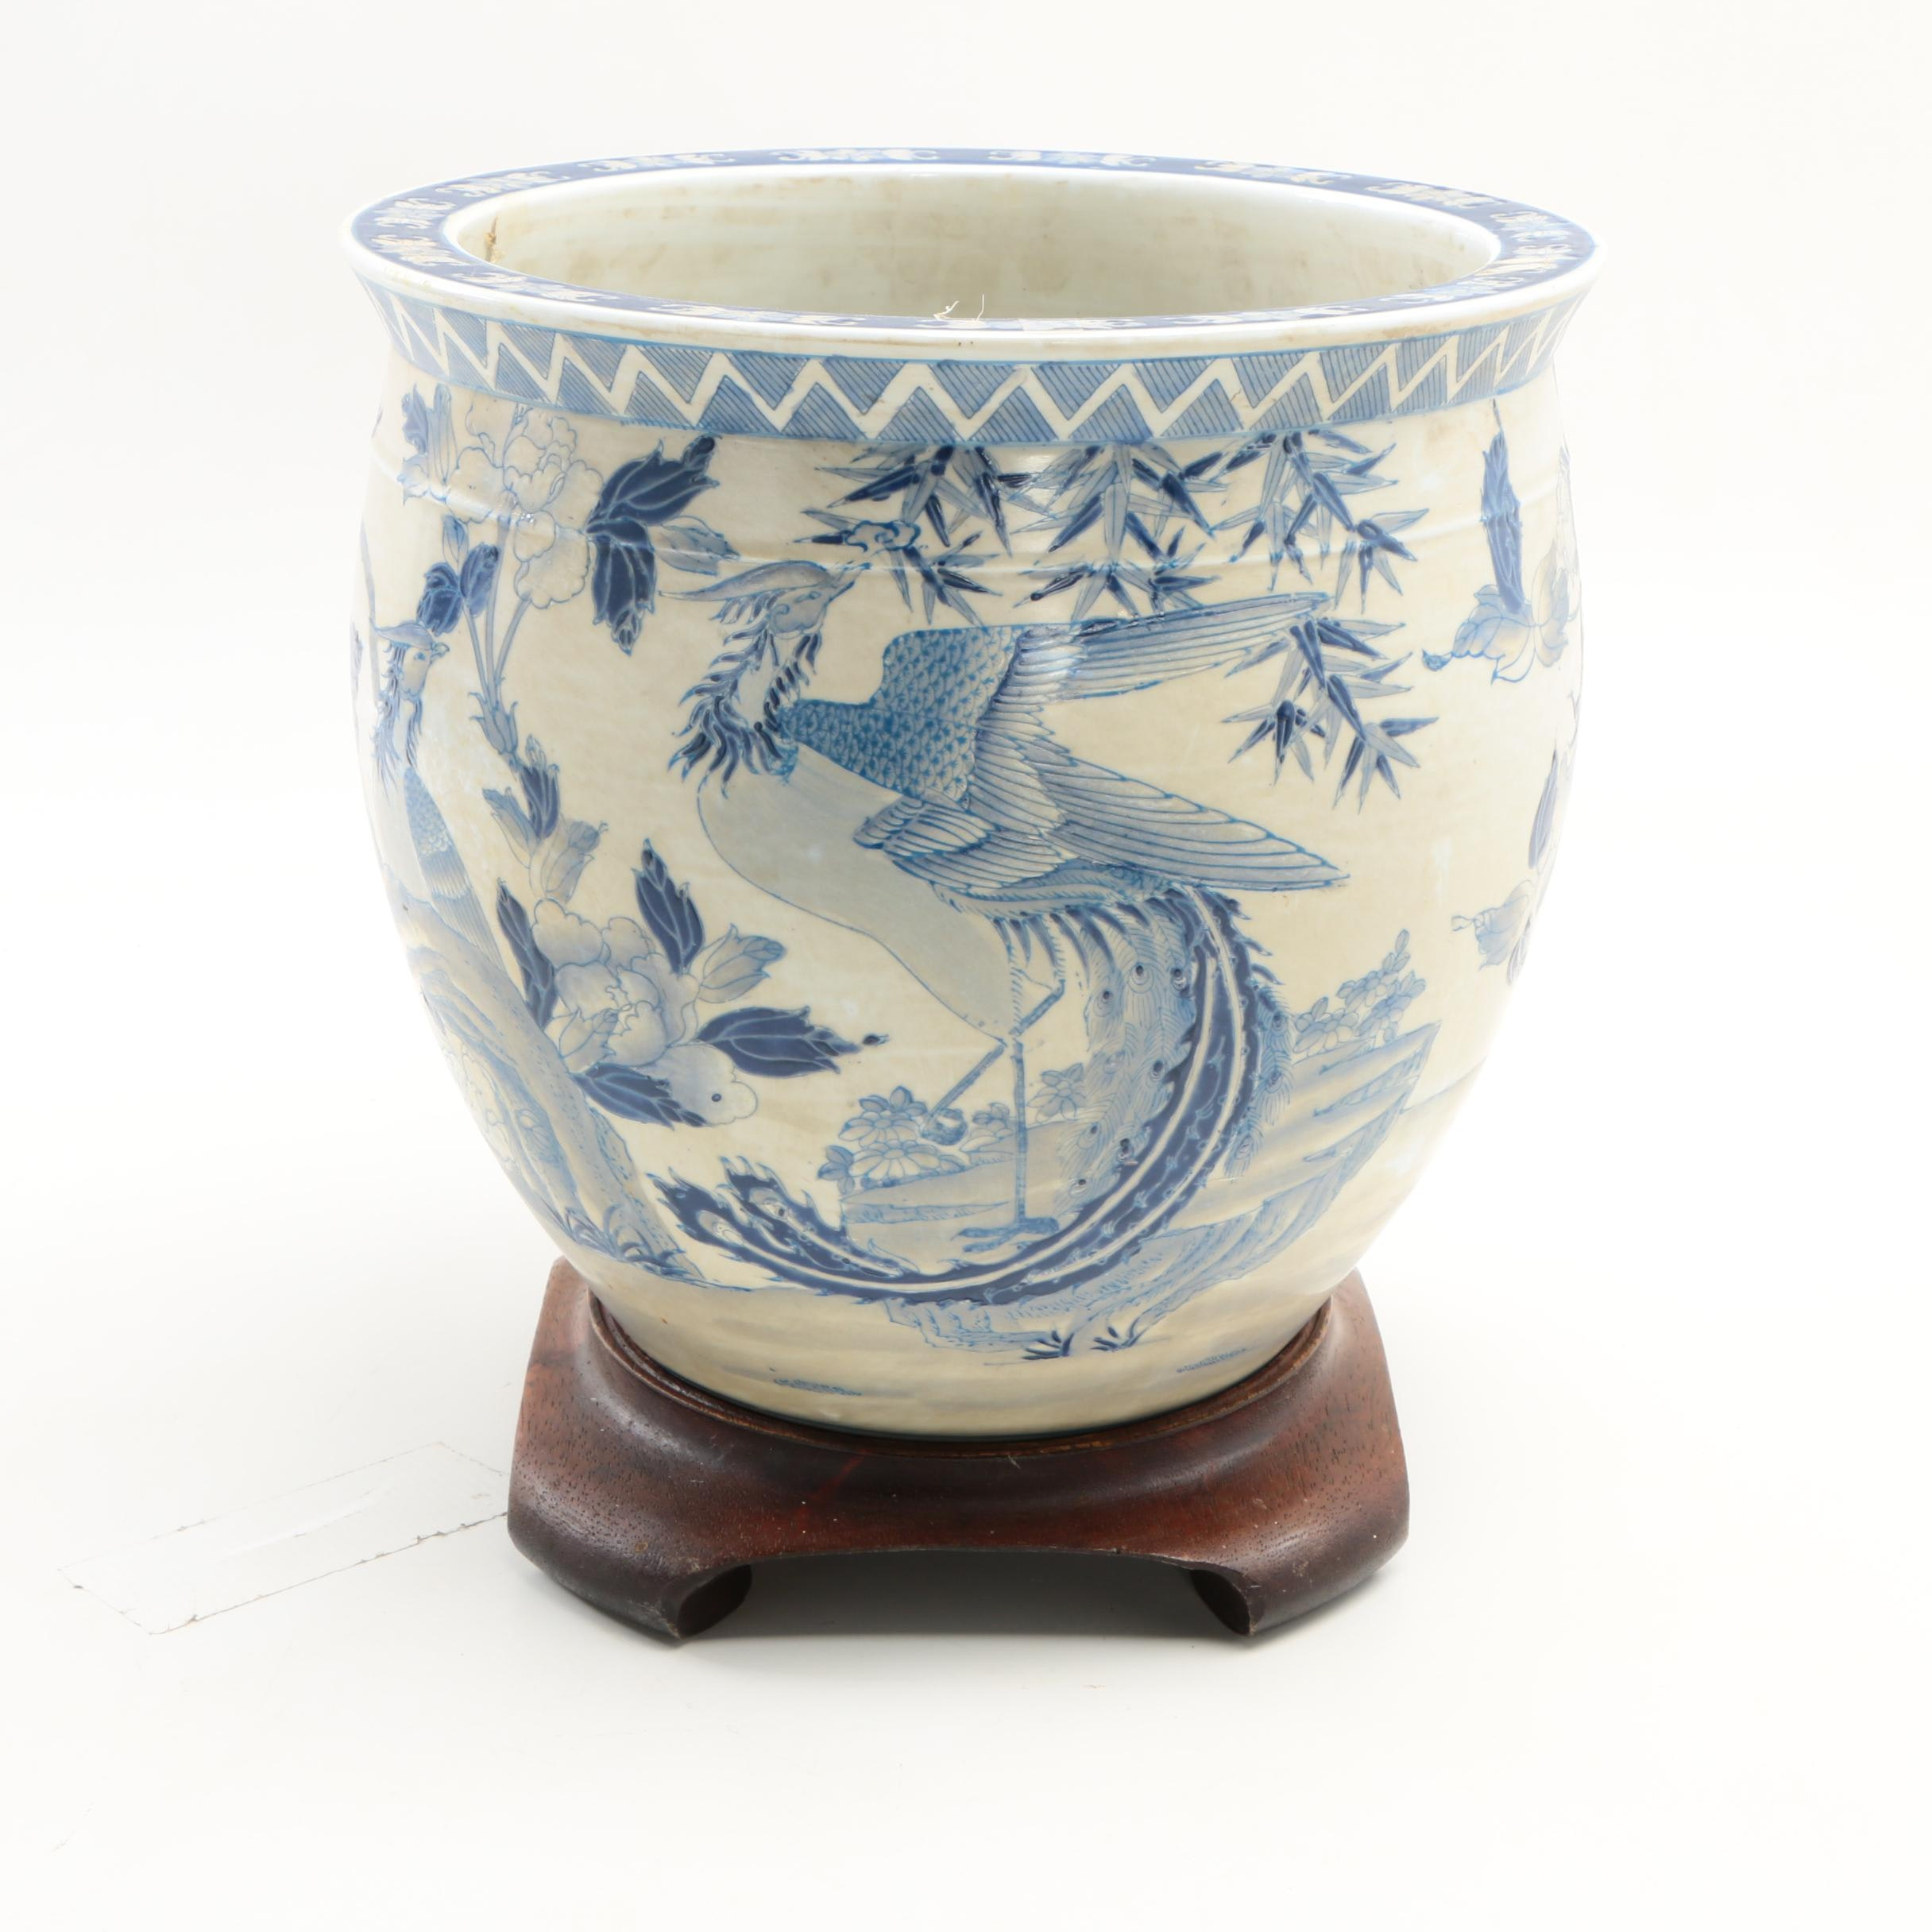 Chinese Blue and White Ceramic Fishbowl Jardinere with Wooden Stand